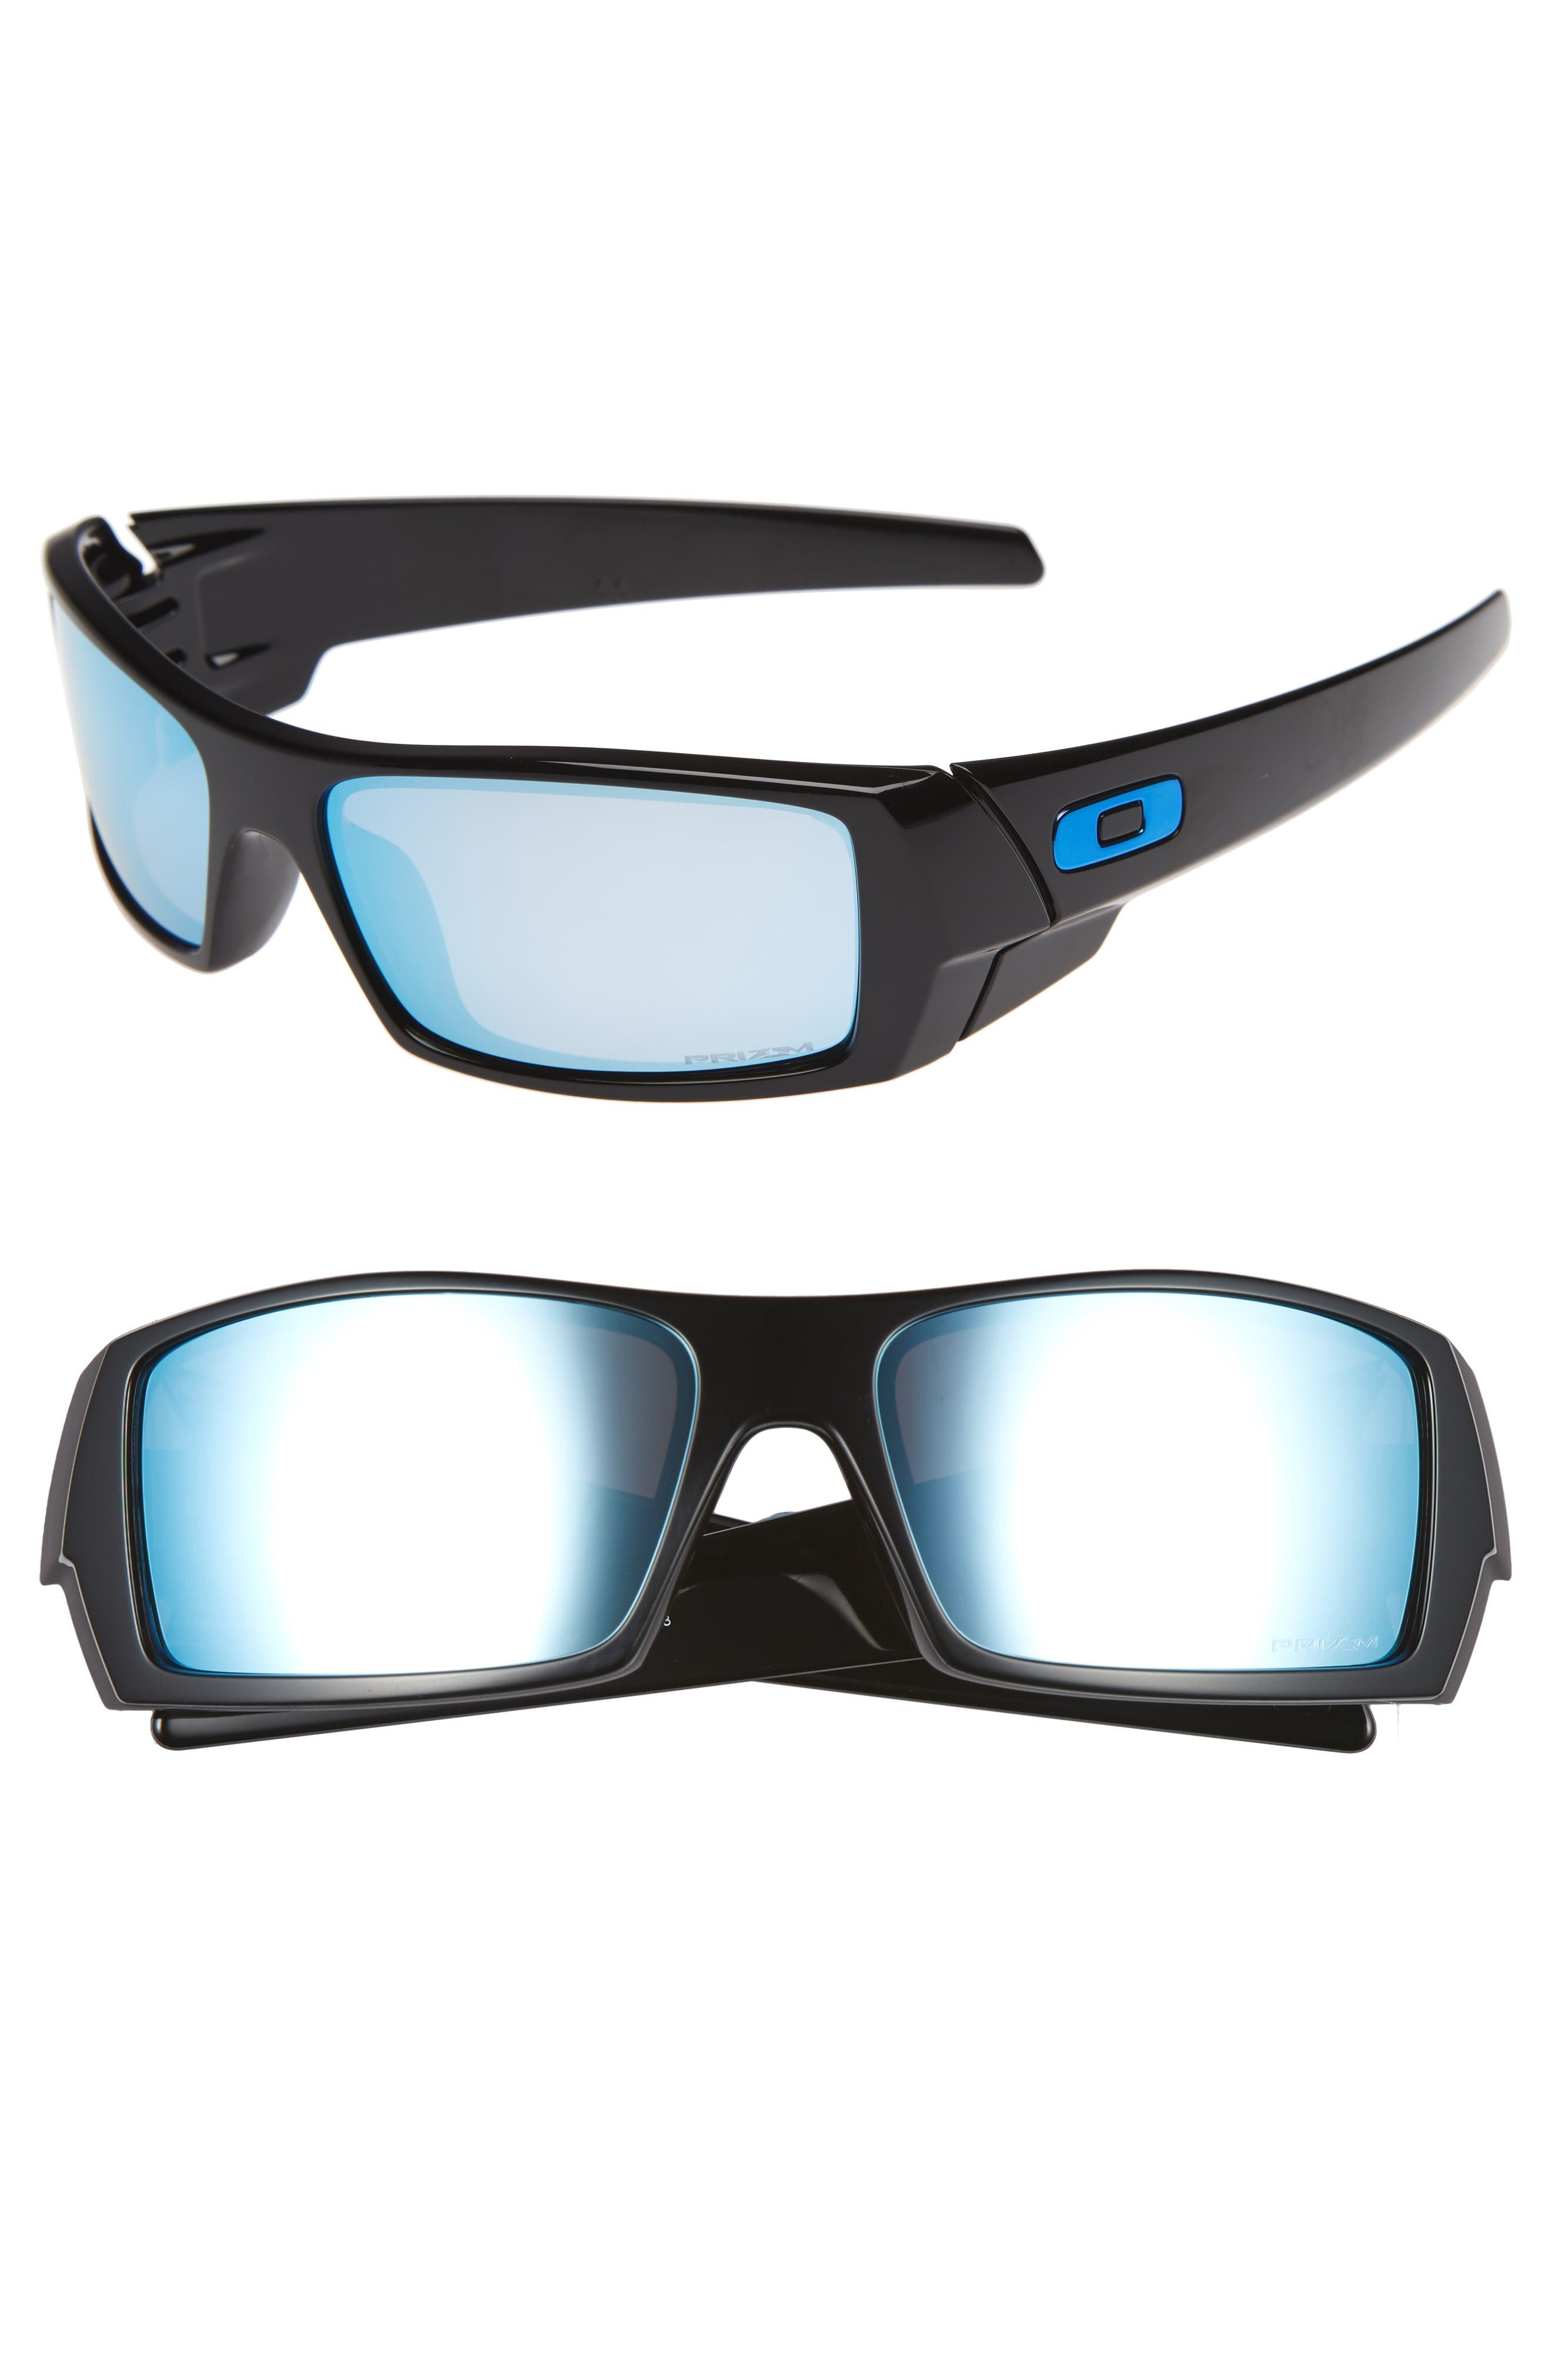 Gascan Prizm 60mm Polarized Sunglasses,                         Main,                         color, Black